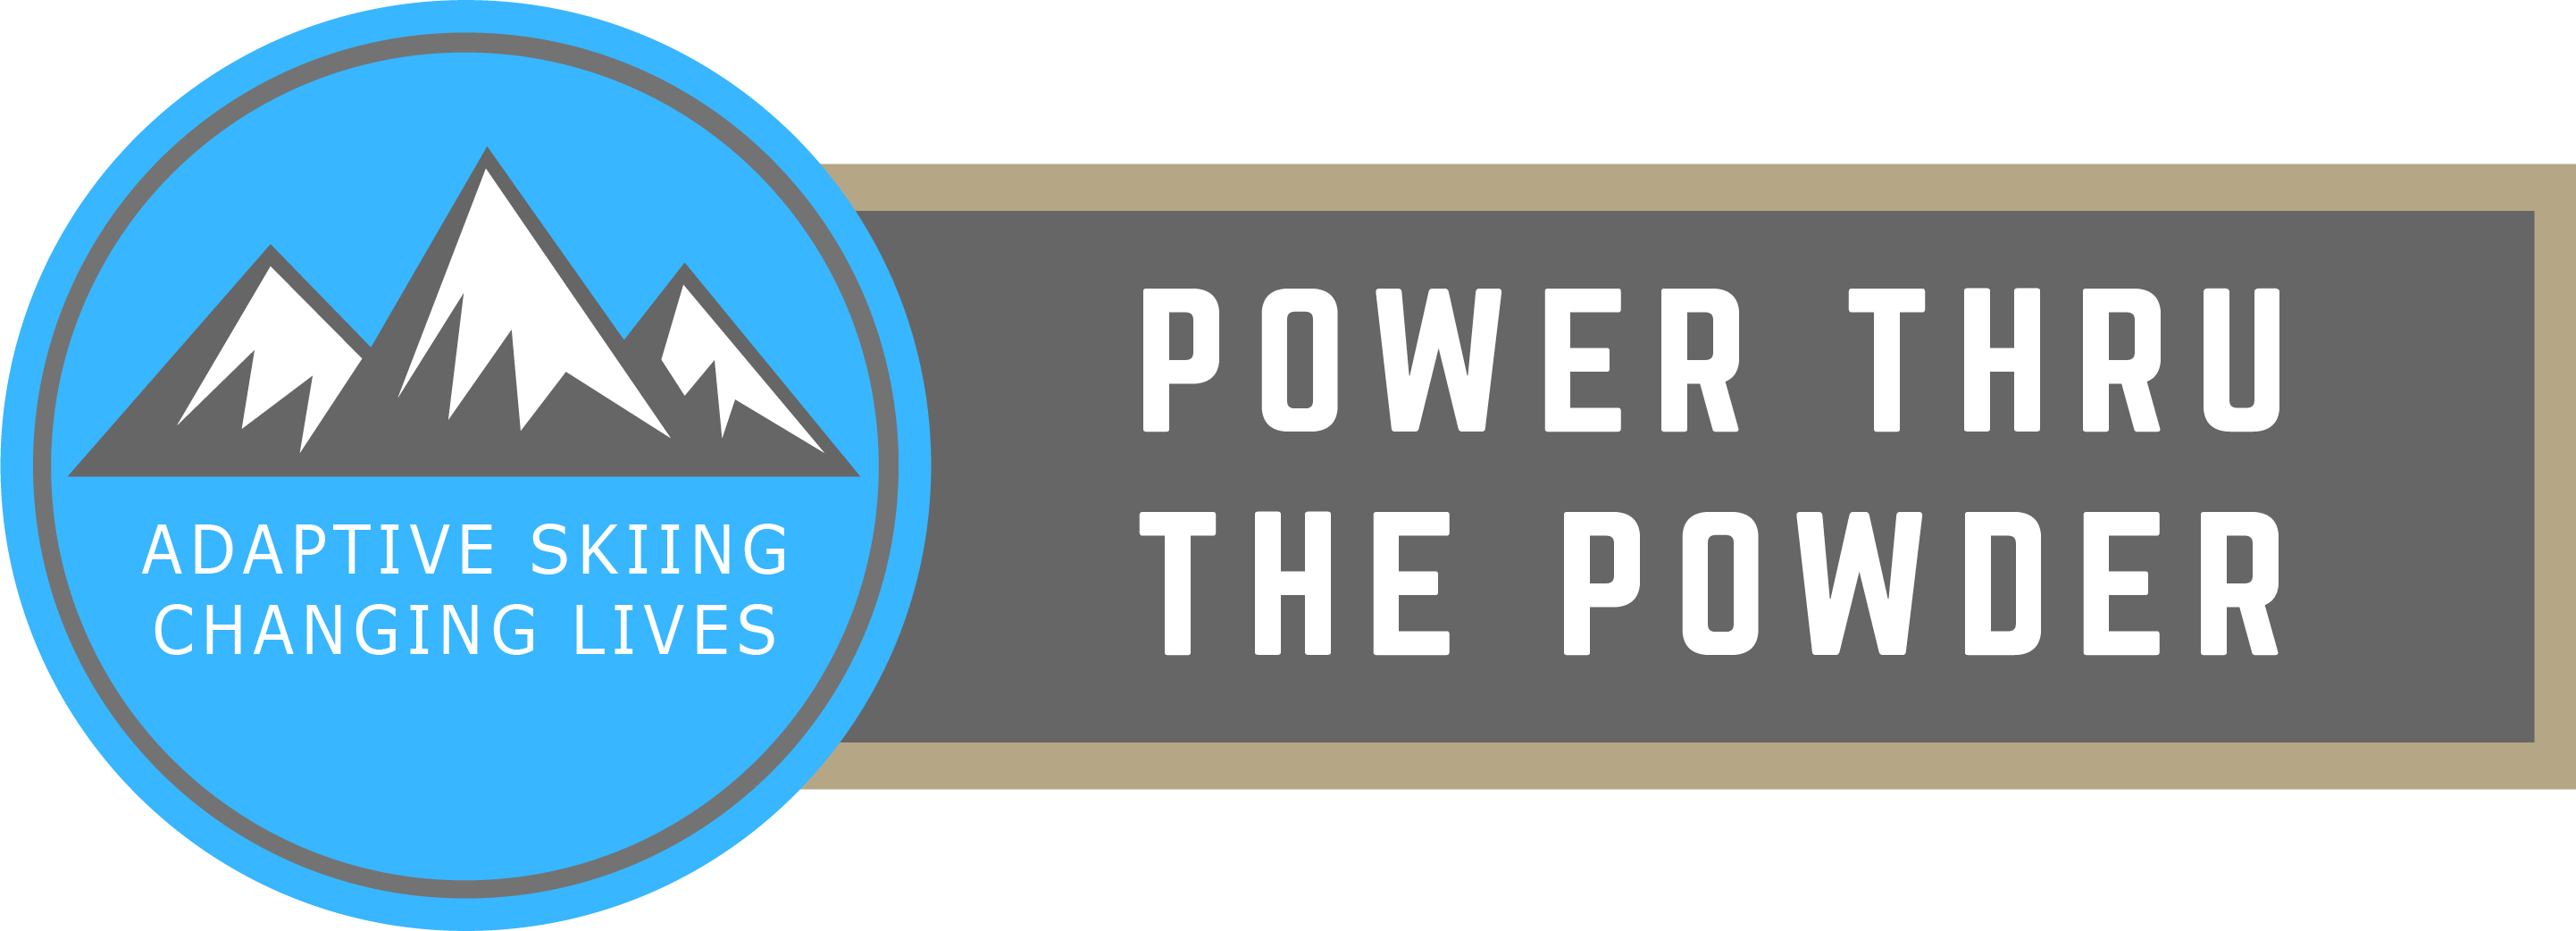 Power Thru The Powder logo